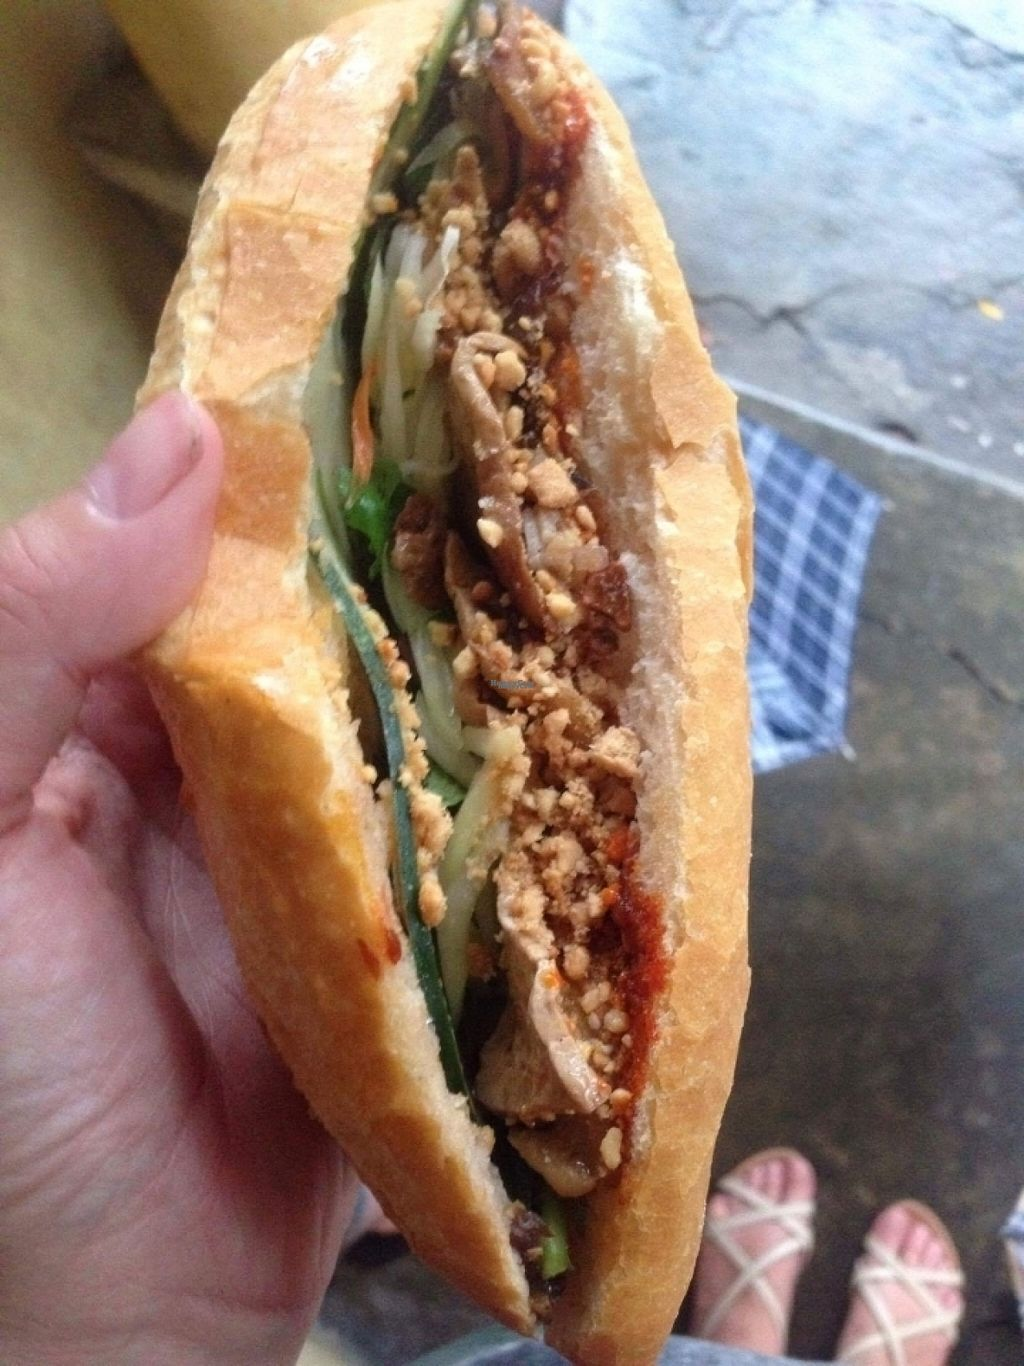 """Photo of Hoi Banh My Chay - Food Stall  by <a href=""""/members/profile/TeddyCourage"""">TeddyCourage</a> <br/>banh my <br/> November 2, 2016  - <a href='/contact/abuse/image/81098/186019'>Report</a>"""